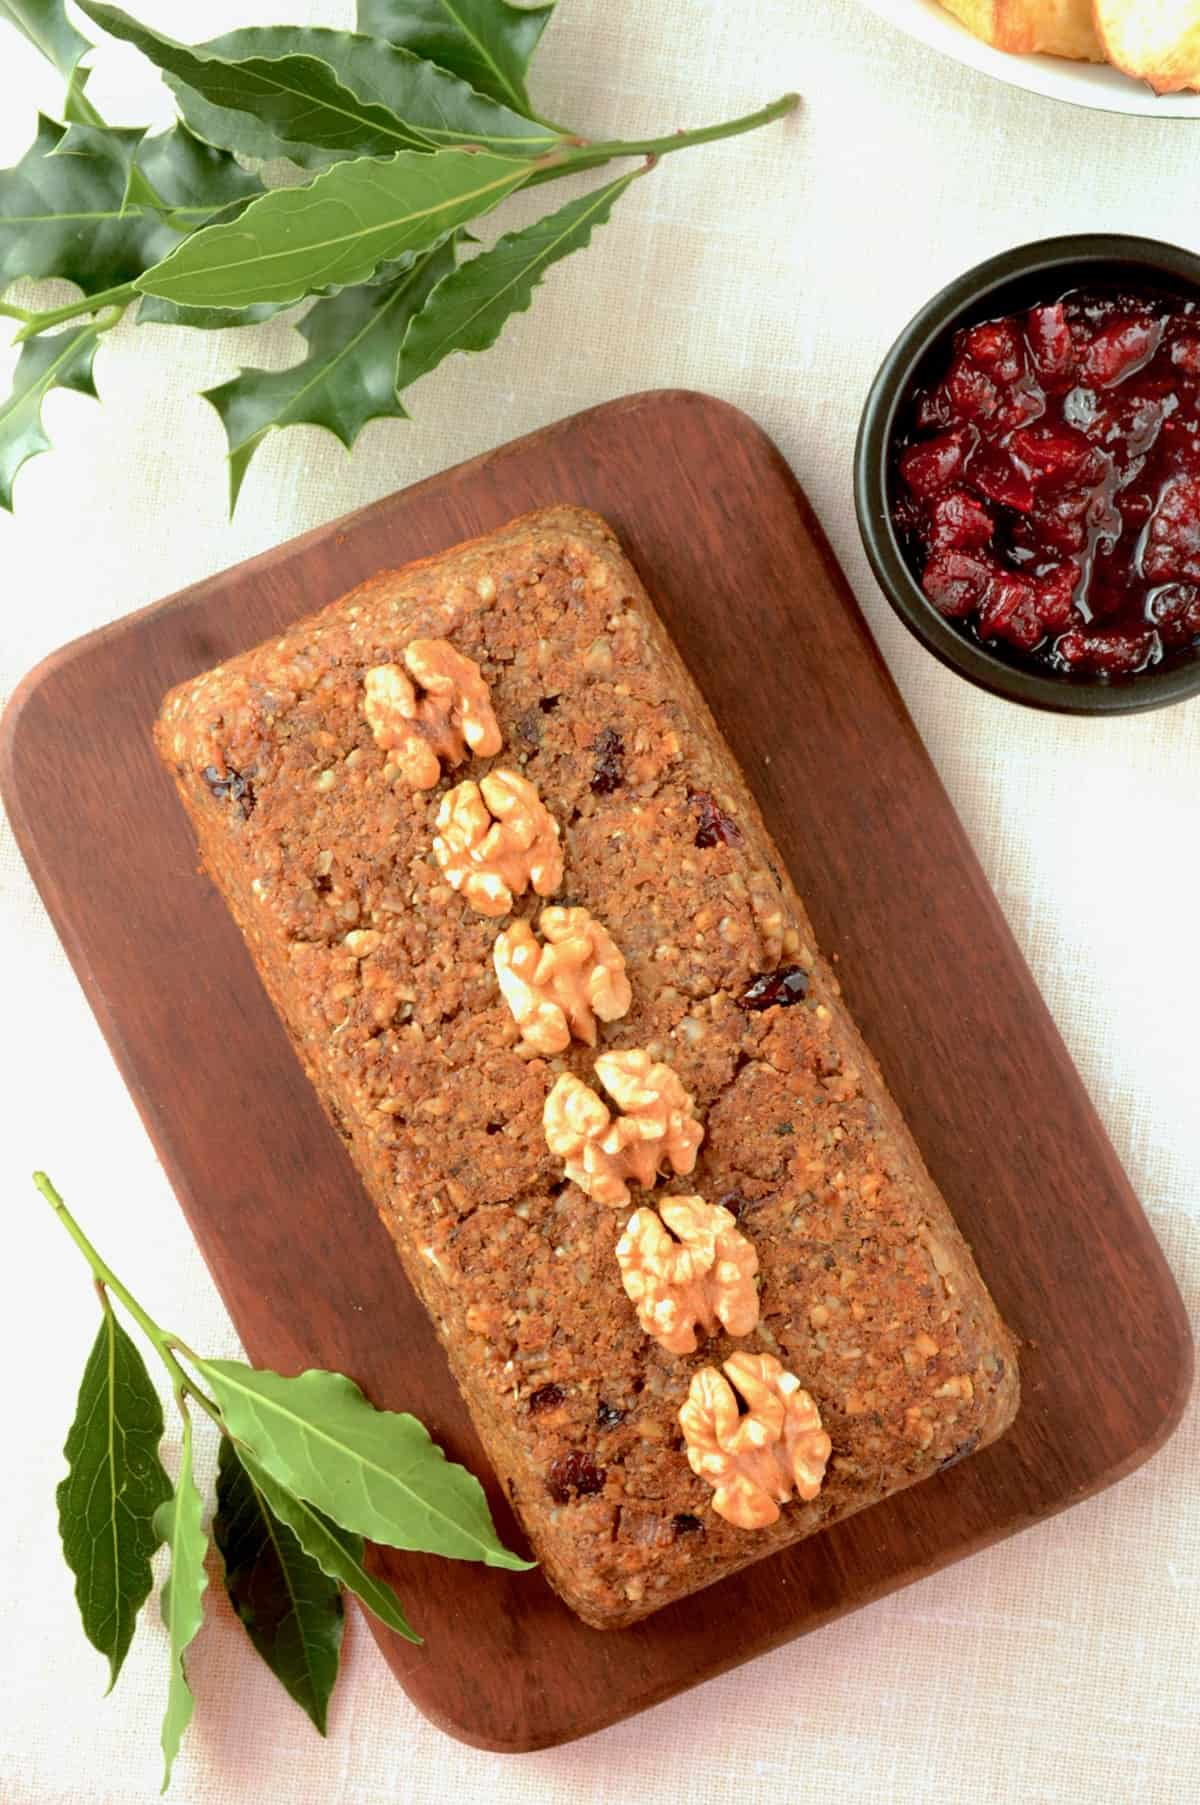 For serving up on the dinner table, the nut loaf looks great decorated with a line of walnut or pecan nut halves placed along the center line of the roast.